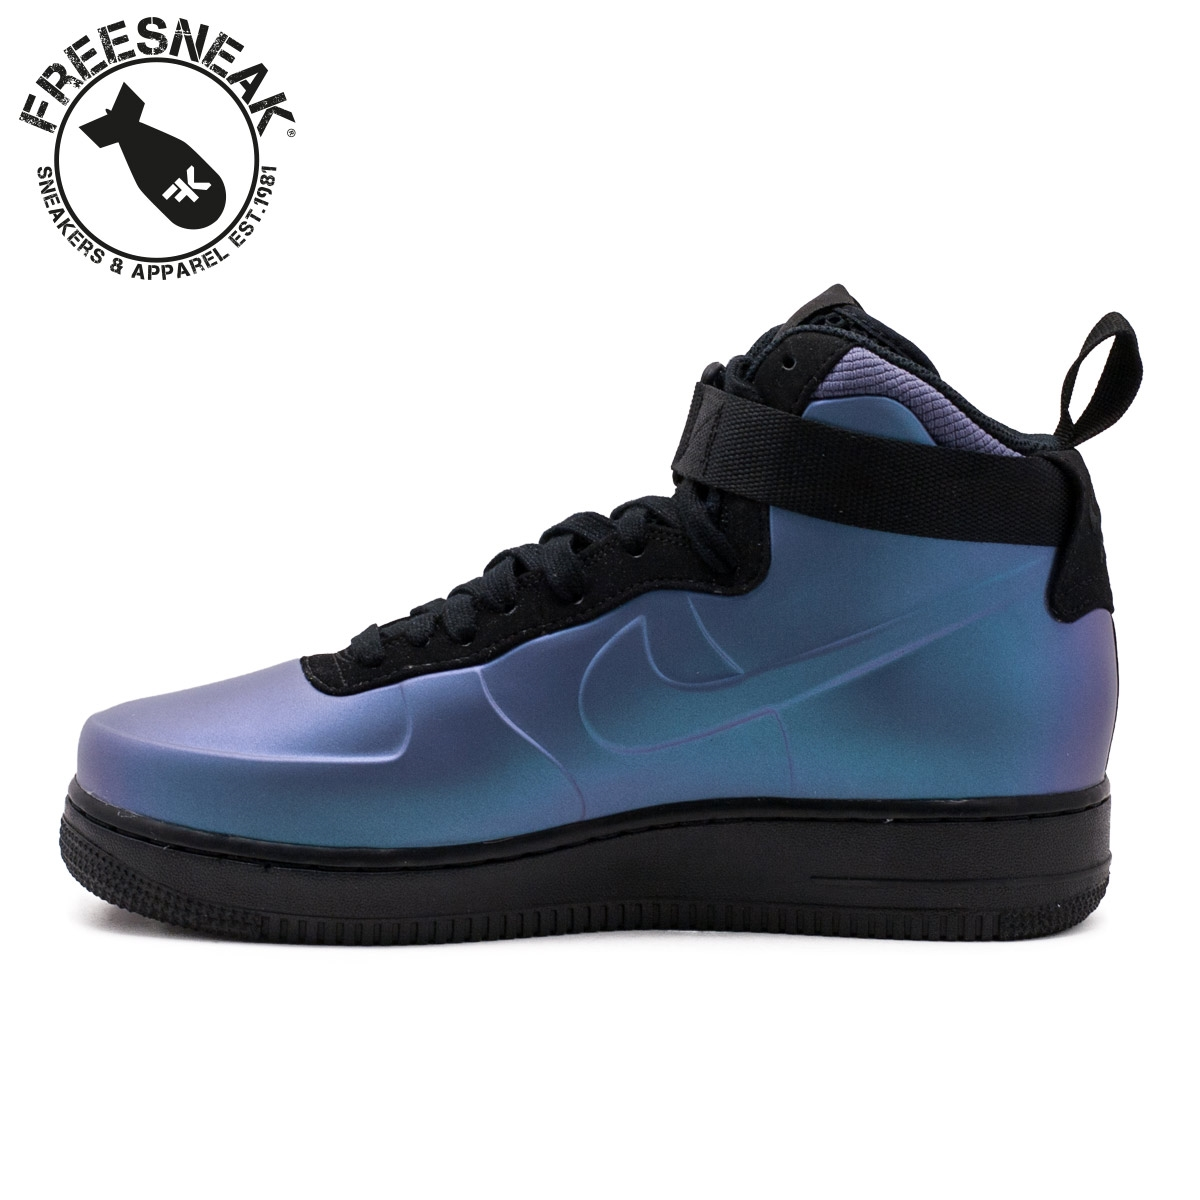 Nike | Air Force 1 Foamposite Cup Carbon | AH6771 002